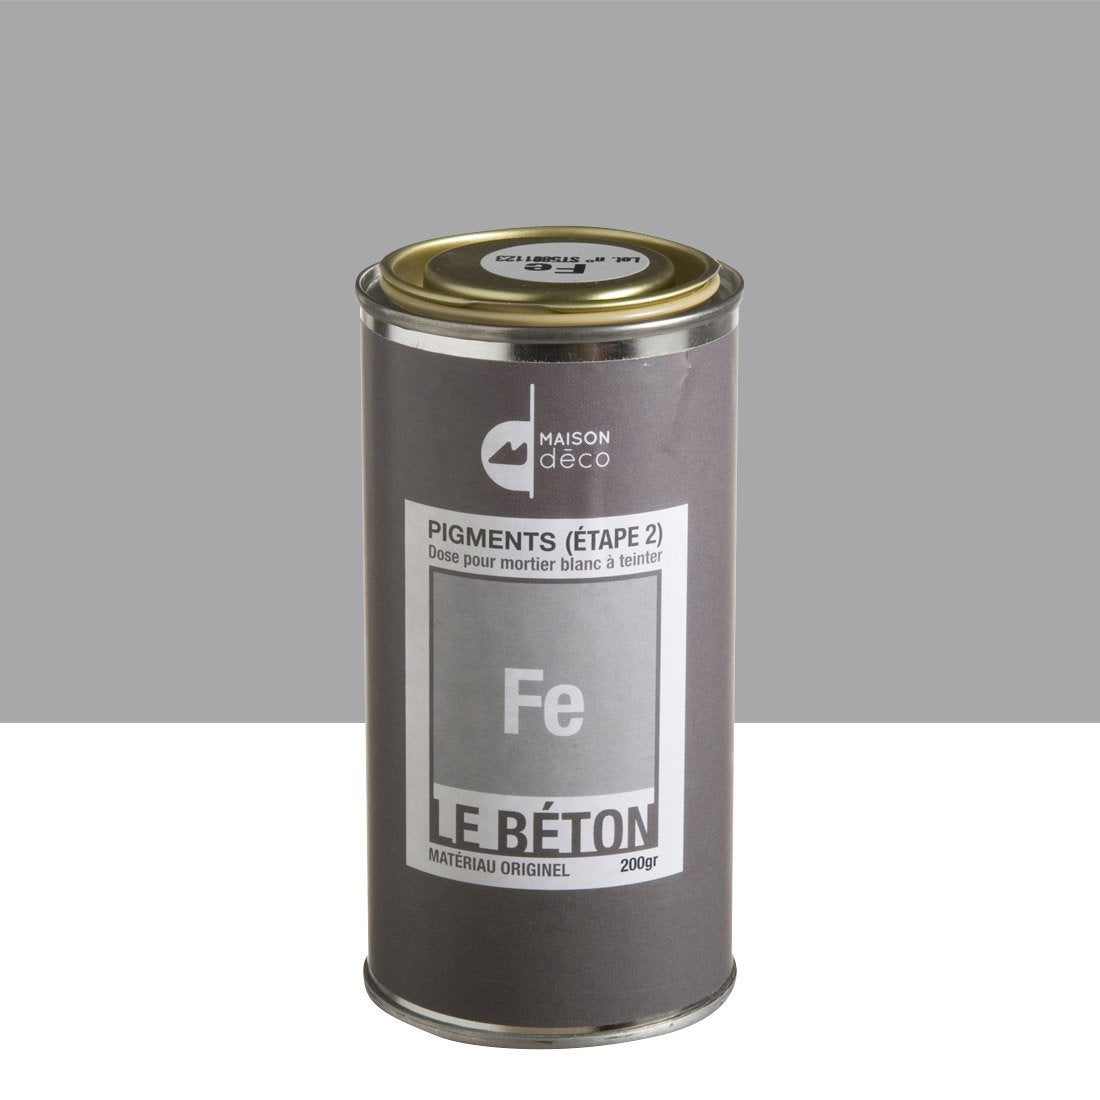 peinture effet pigment le b ton maison deco fe 0 2 kg leroy merlin. Black Bedroom Furniture Sets. Home Design Ideas